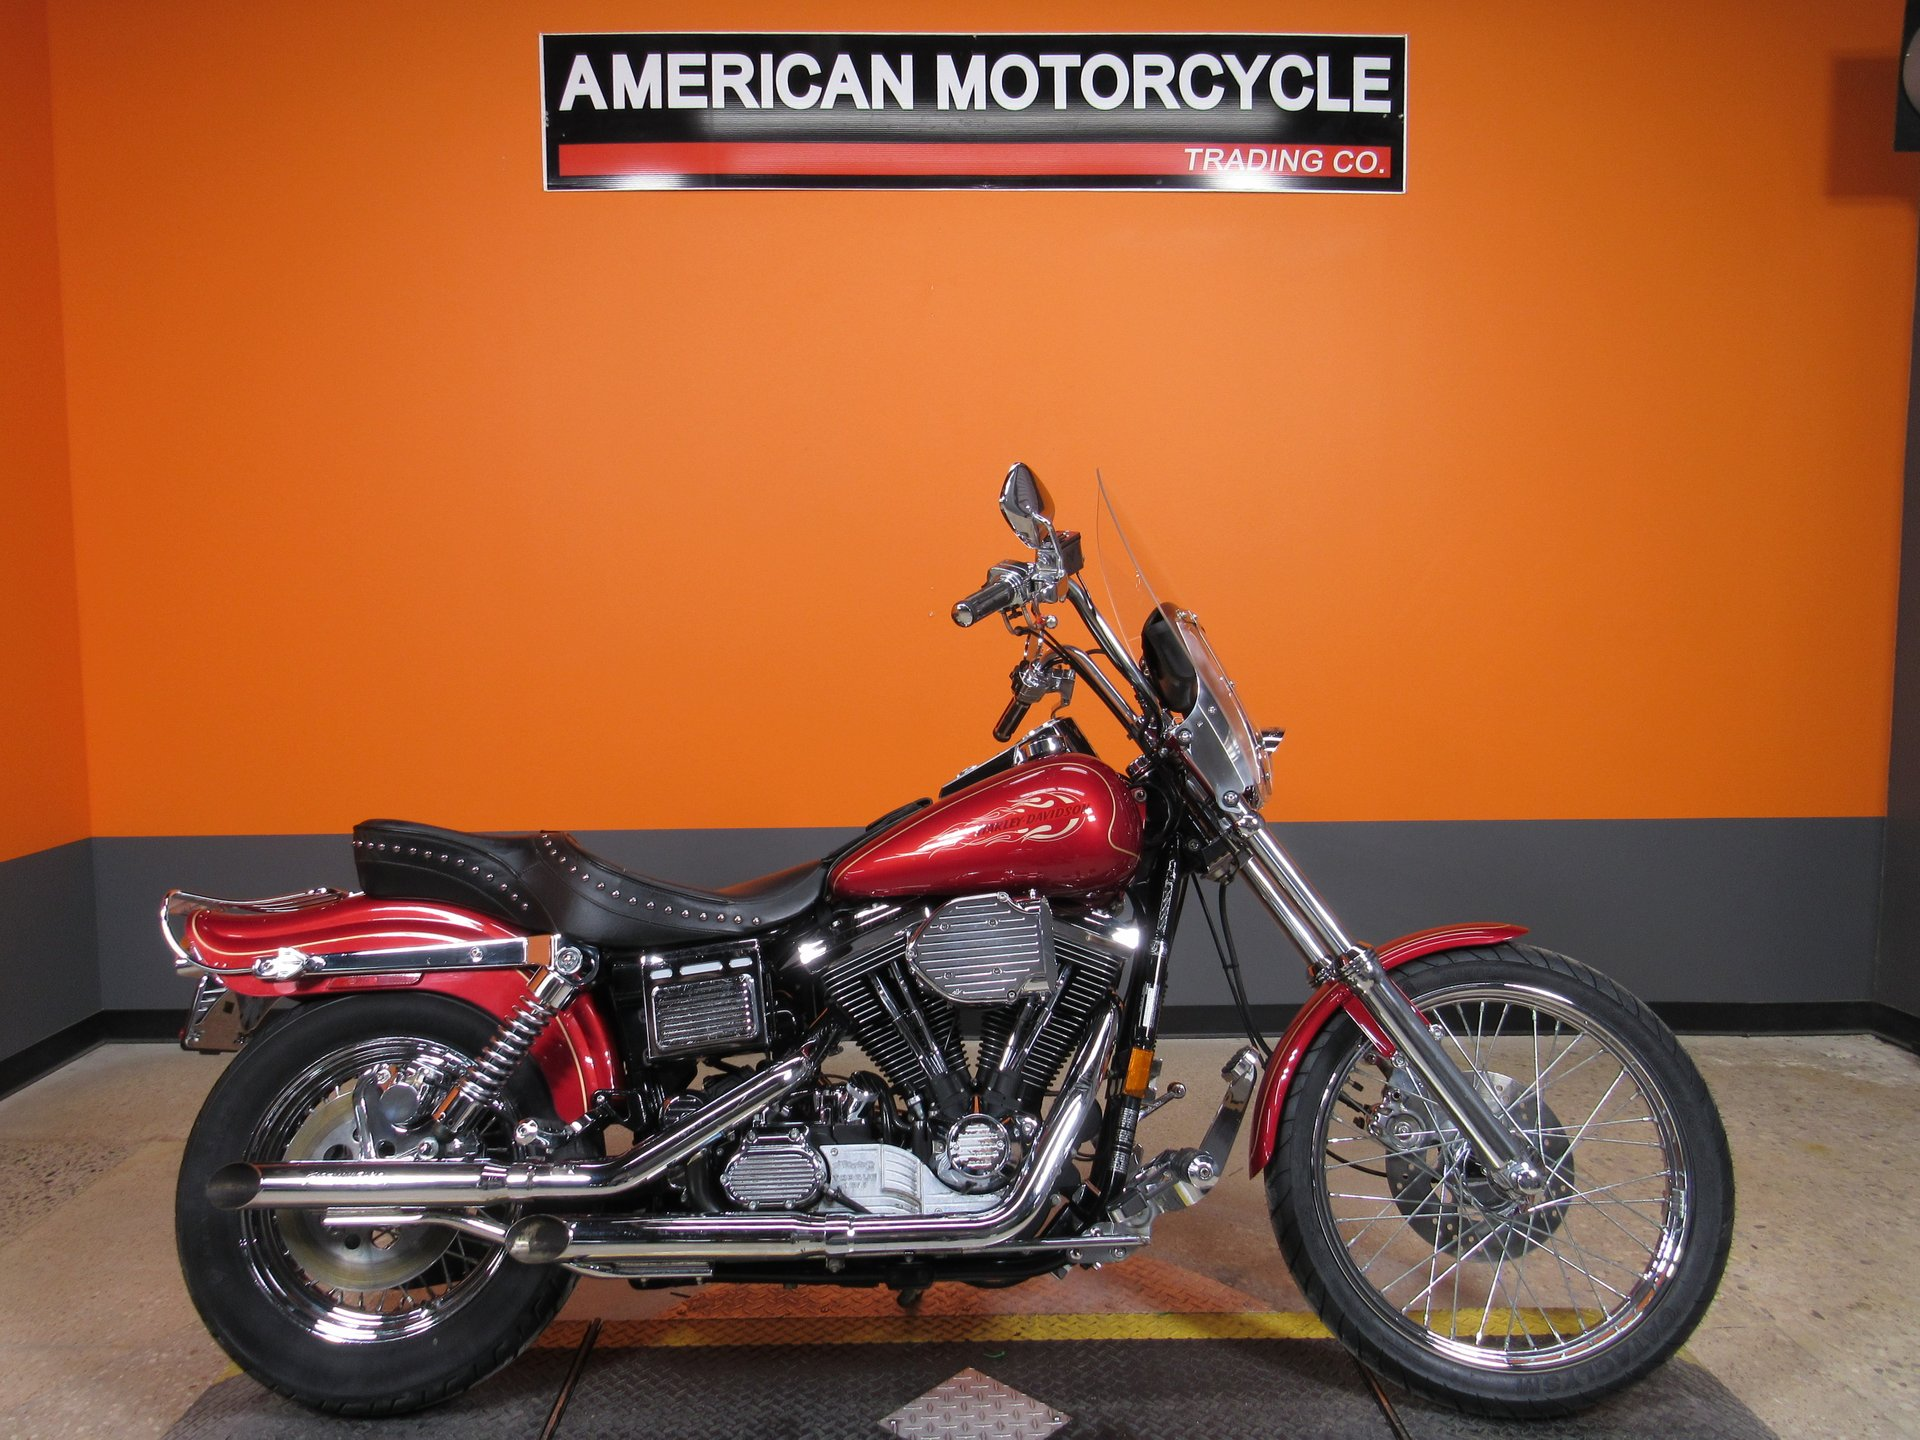 1994 Harley-Davidson Dyna Wide Glide | American Motorcycle ...